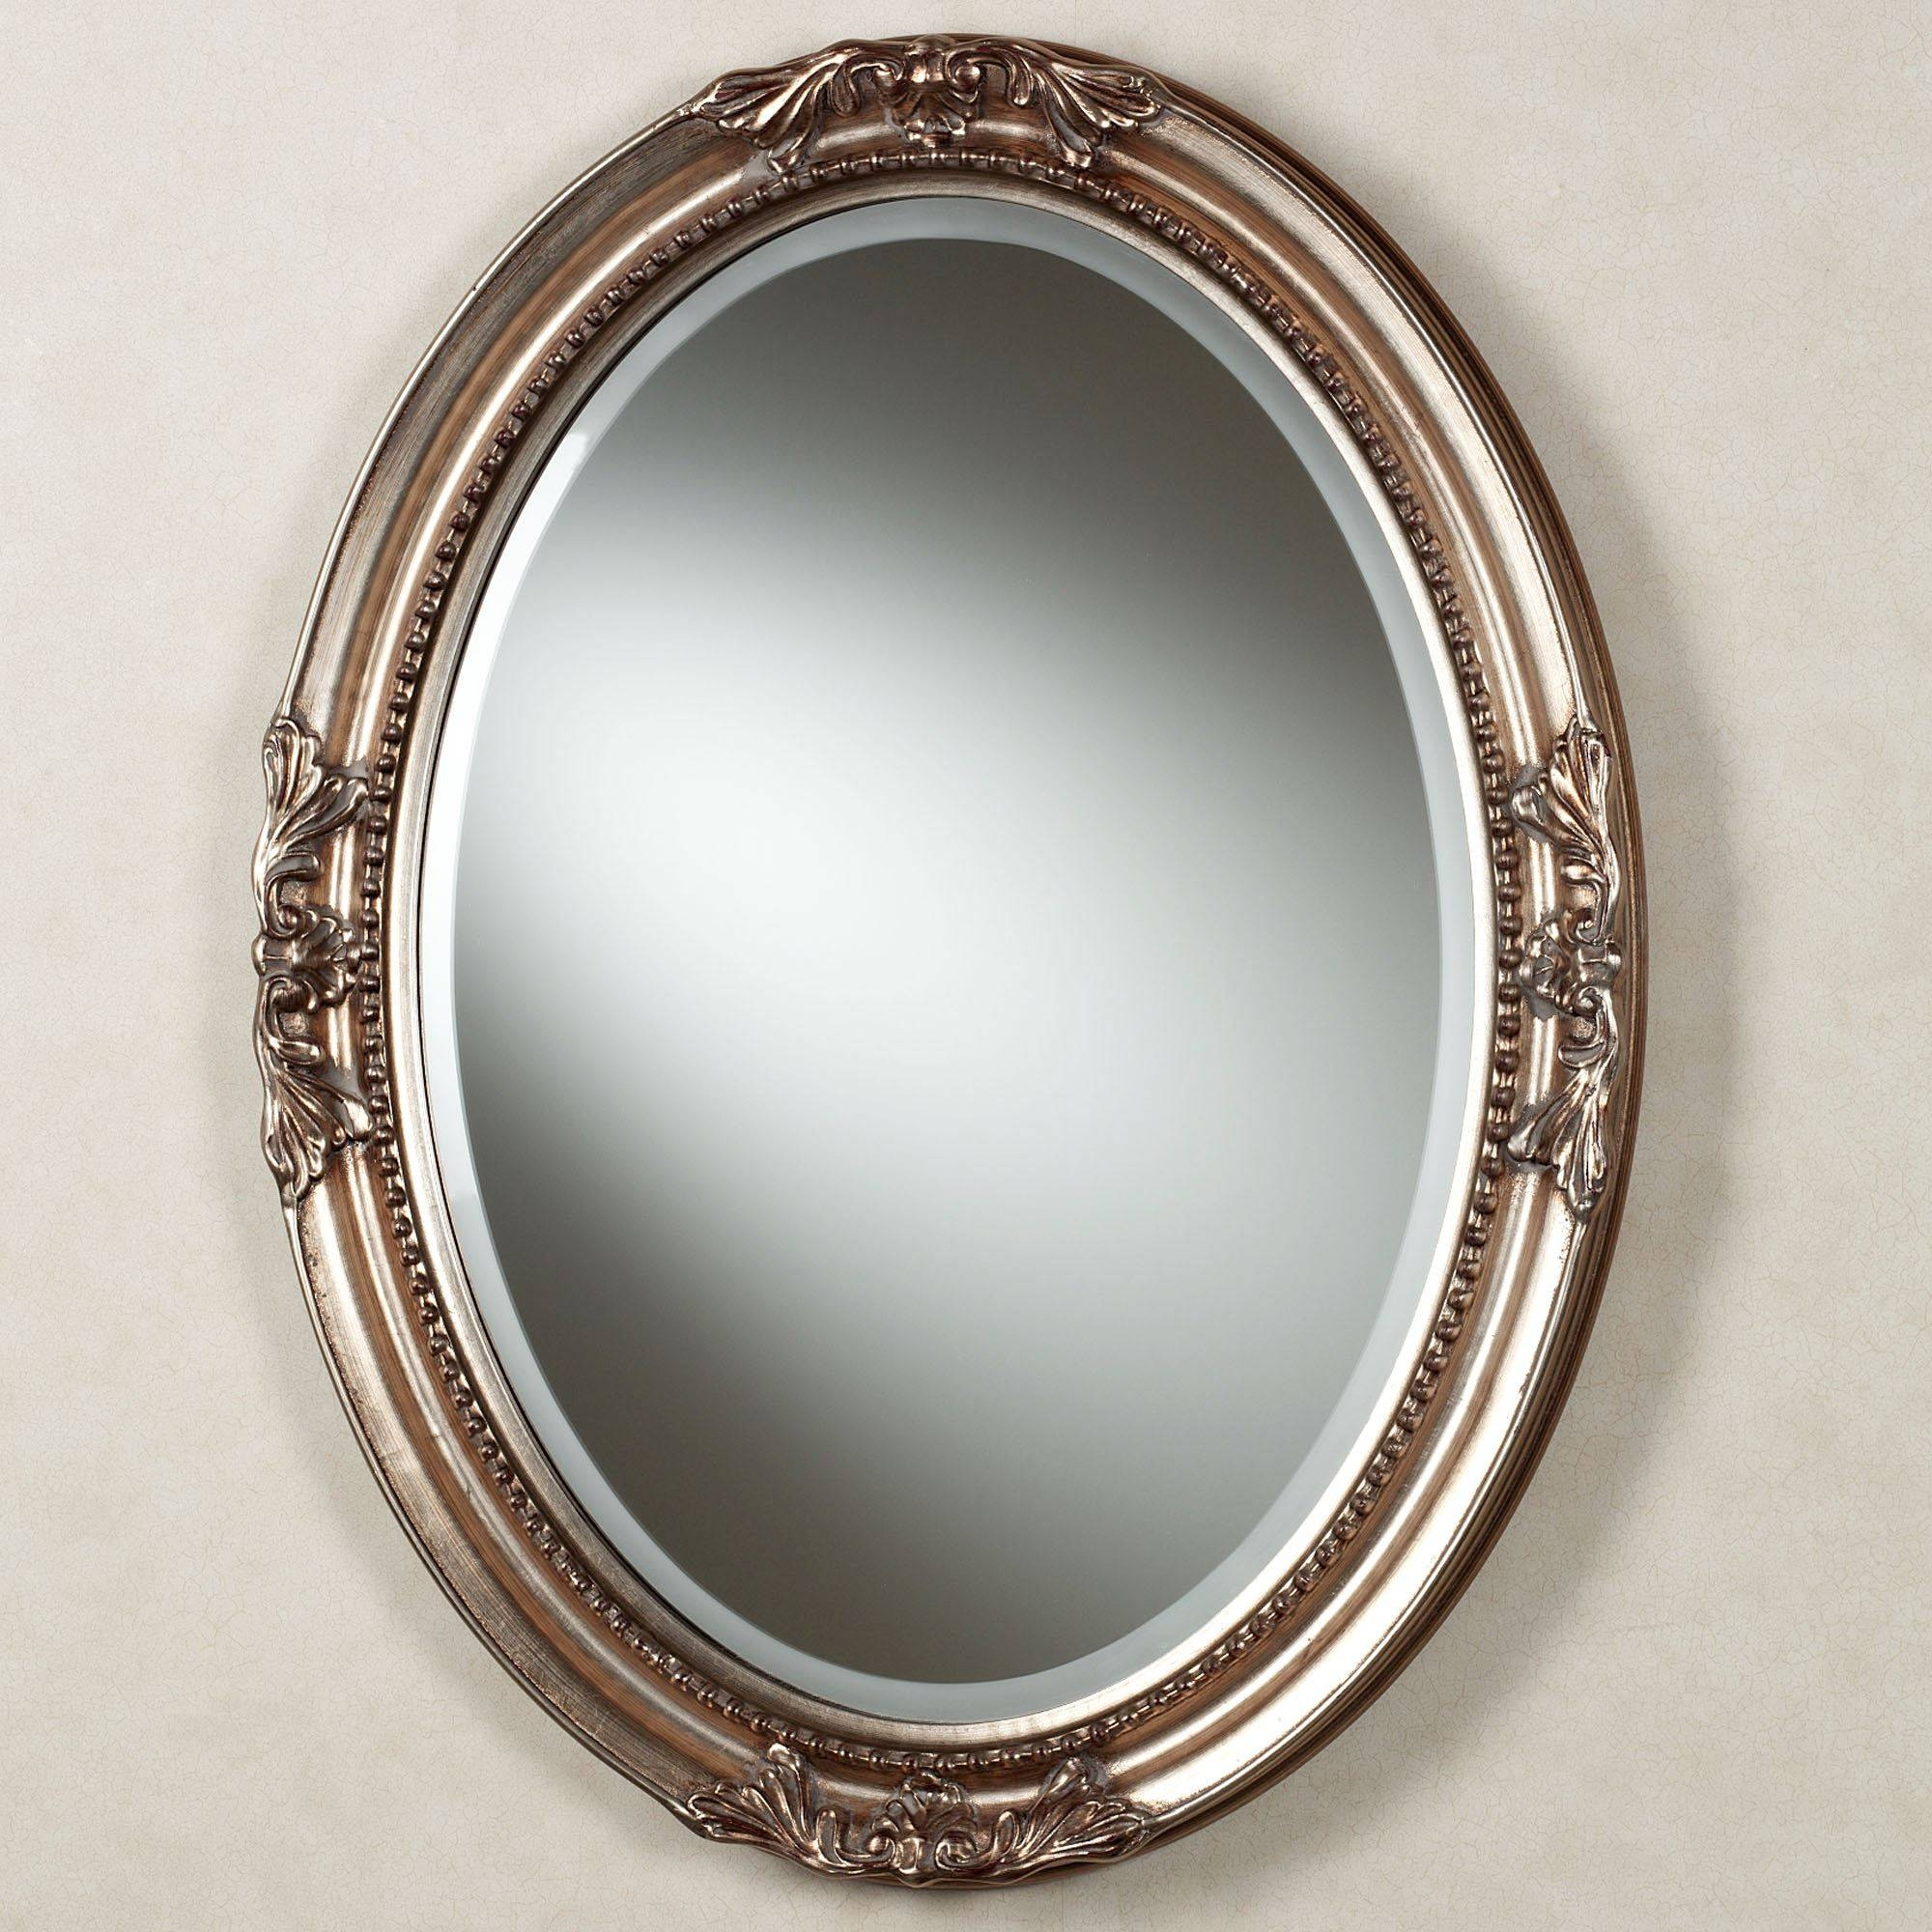 Andina Oval Wall Mirror throughout Silver Oval Wall Mirrors (Image 3 of 25)